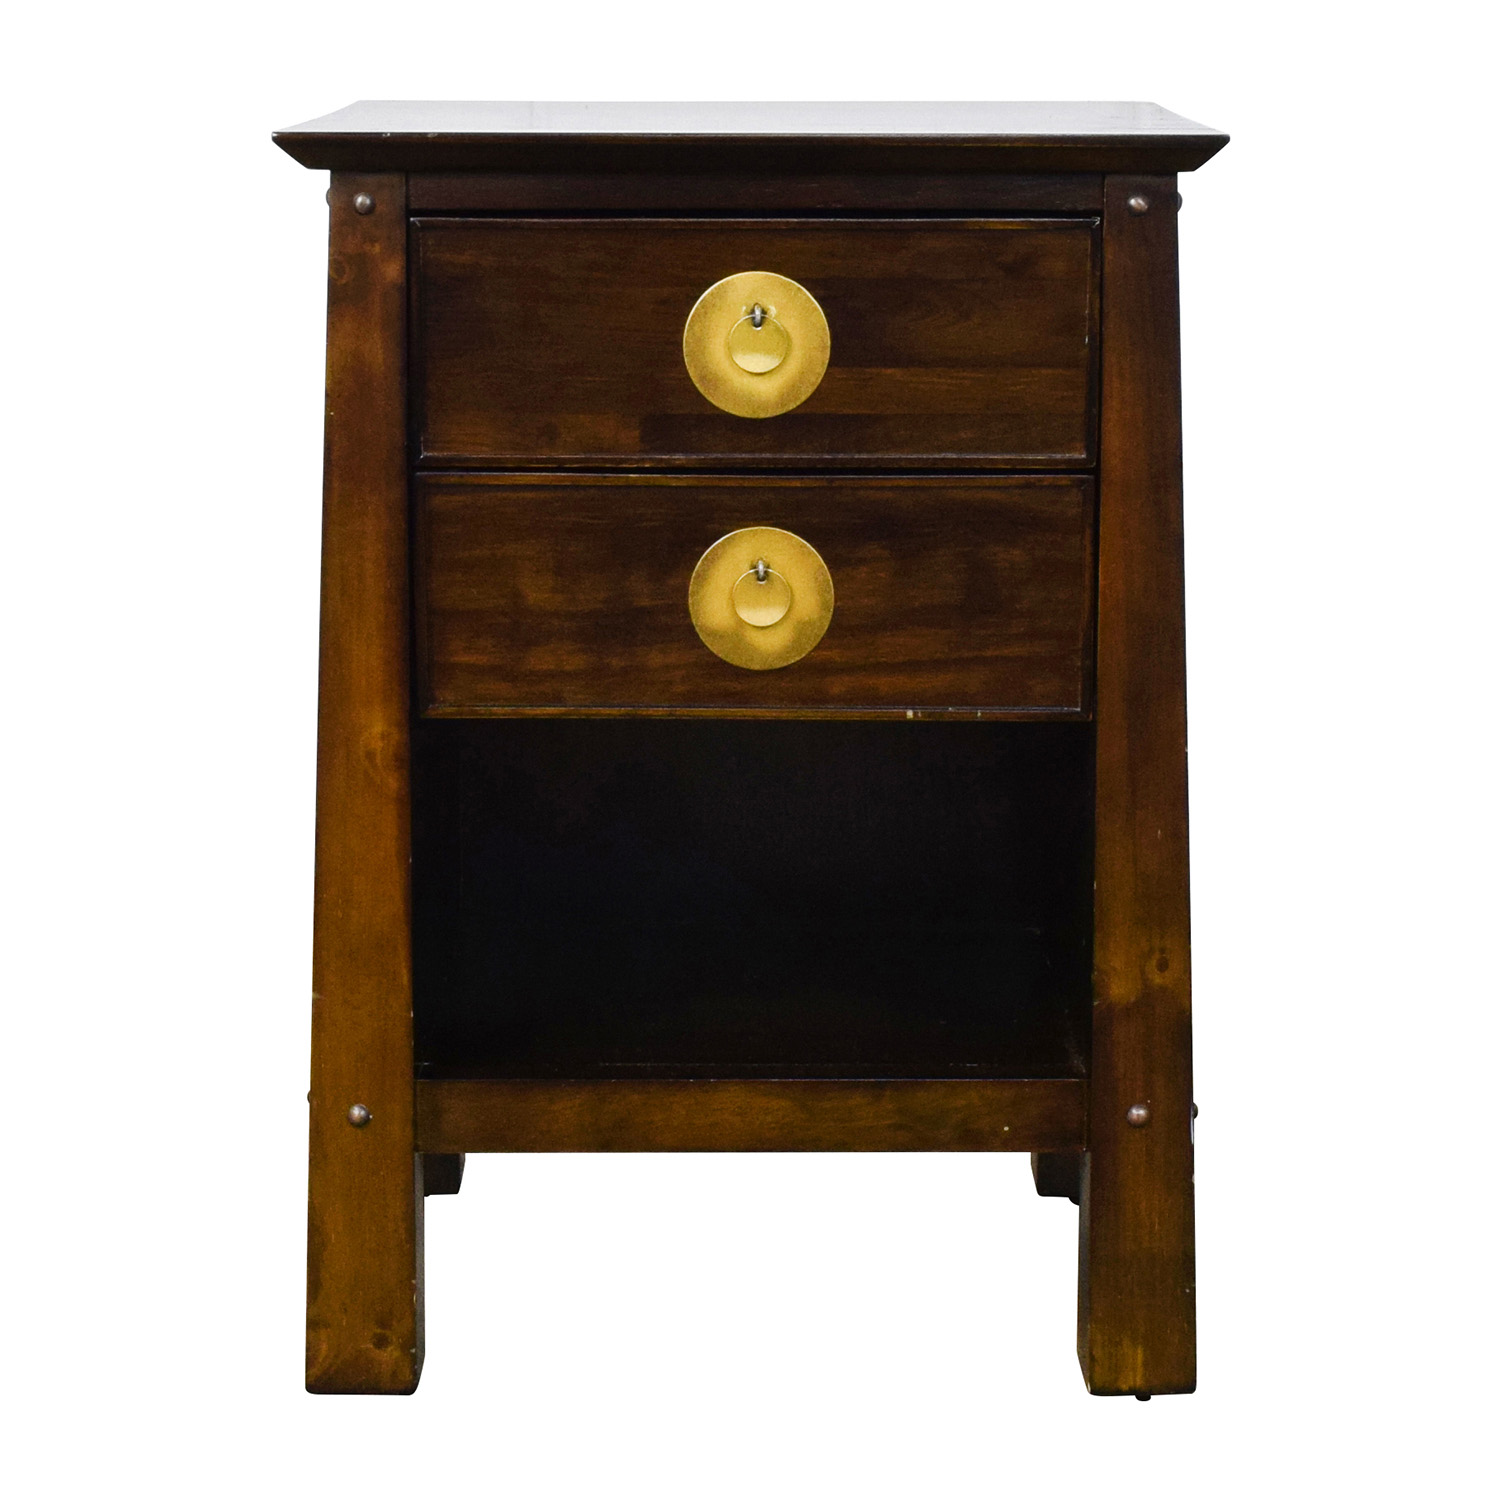 79 off pier 1 imports pier 1 imports shanghai collection espresso nightstand tables for Pier one imports bedroom furniture